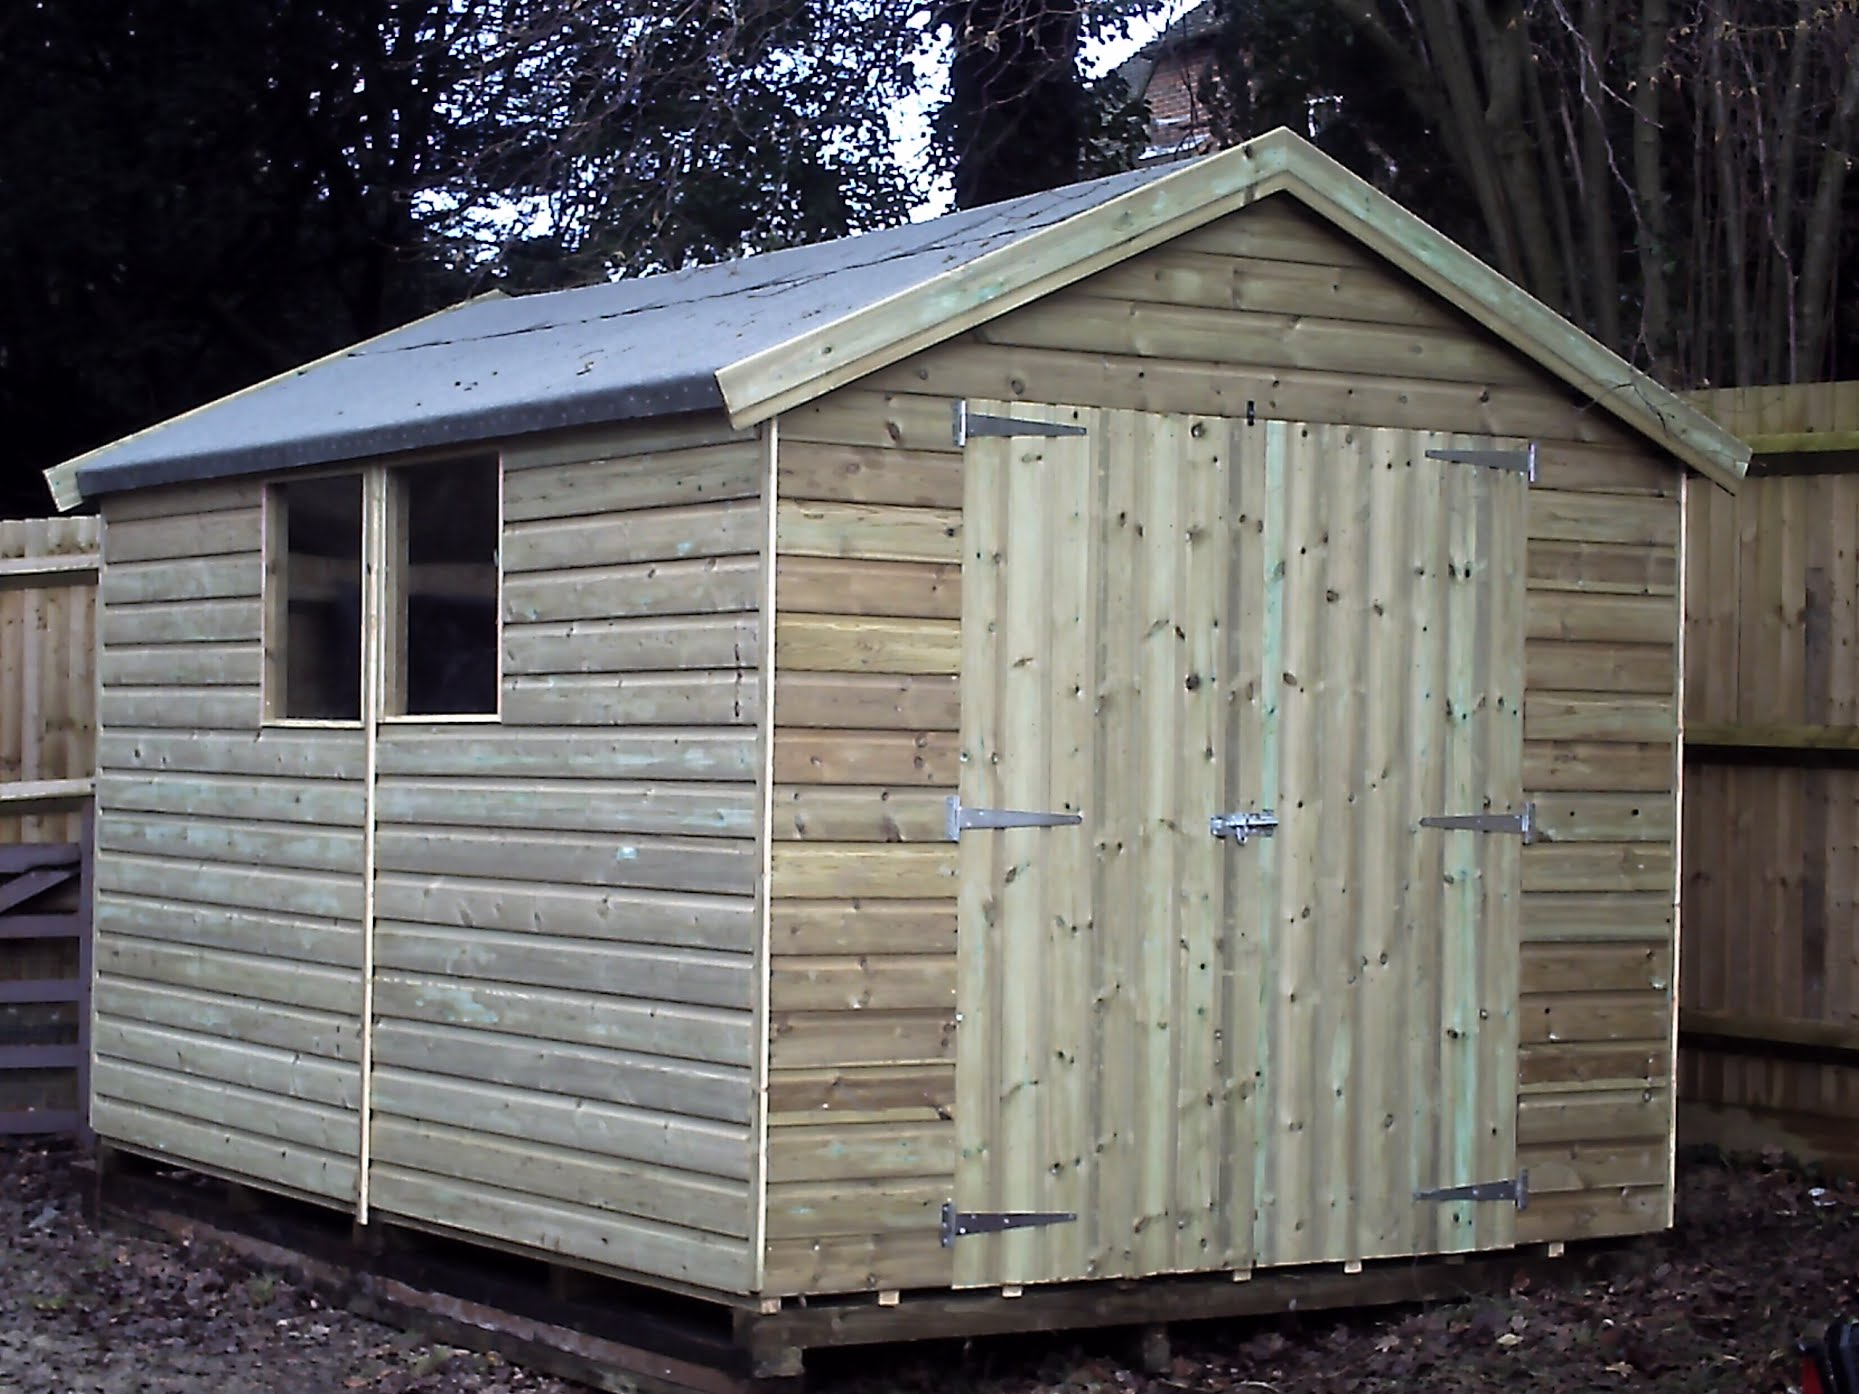 Heavy Duty Tanalised Sheds Apexforshedscouk - Difference between log lap sheds and ship lap sheds